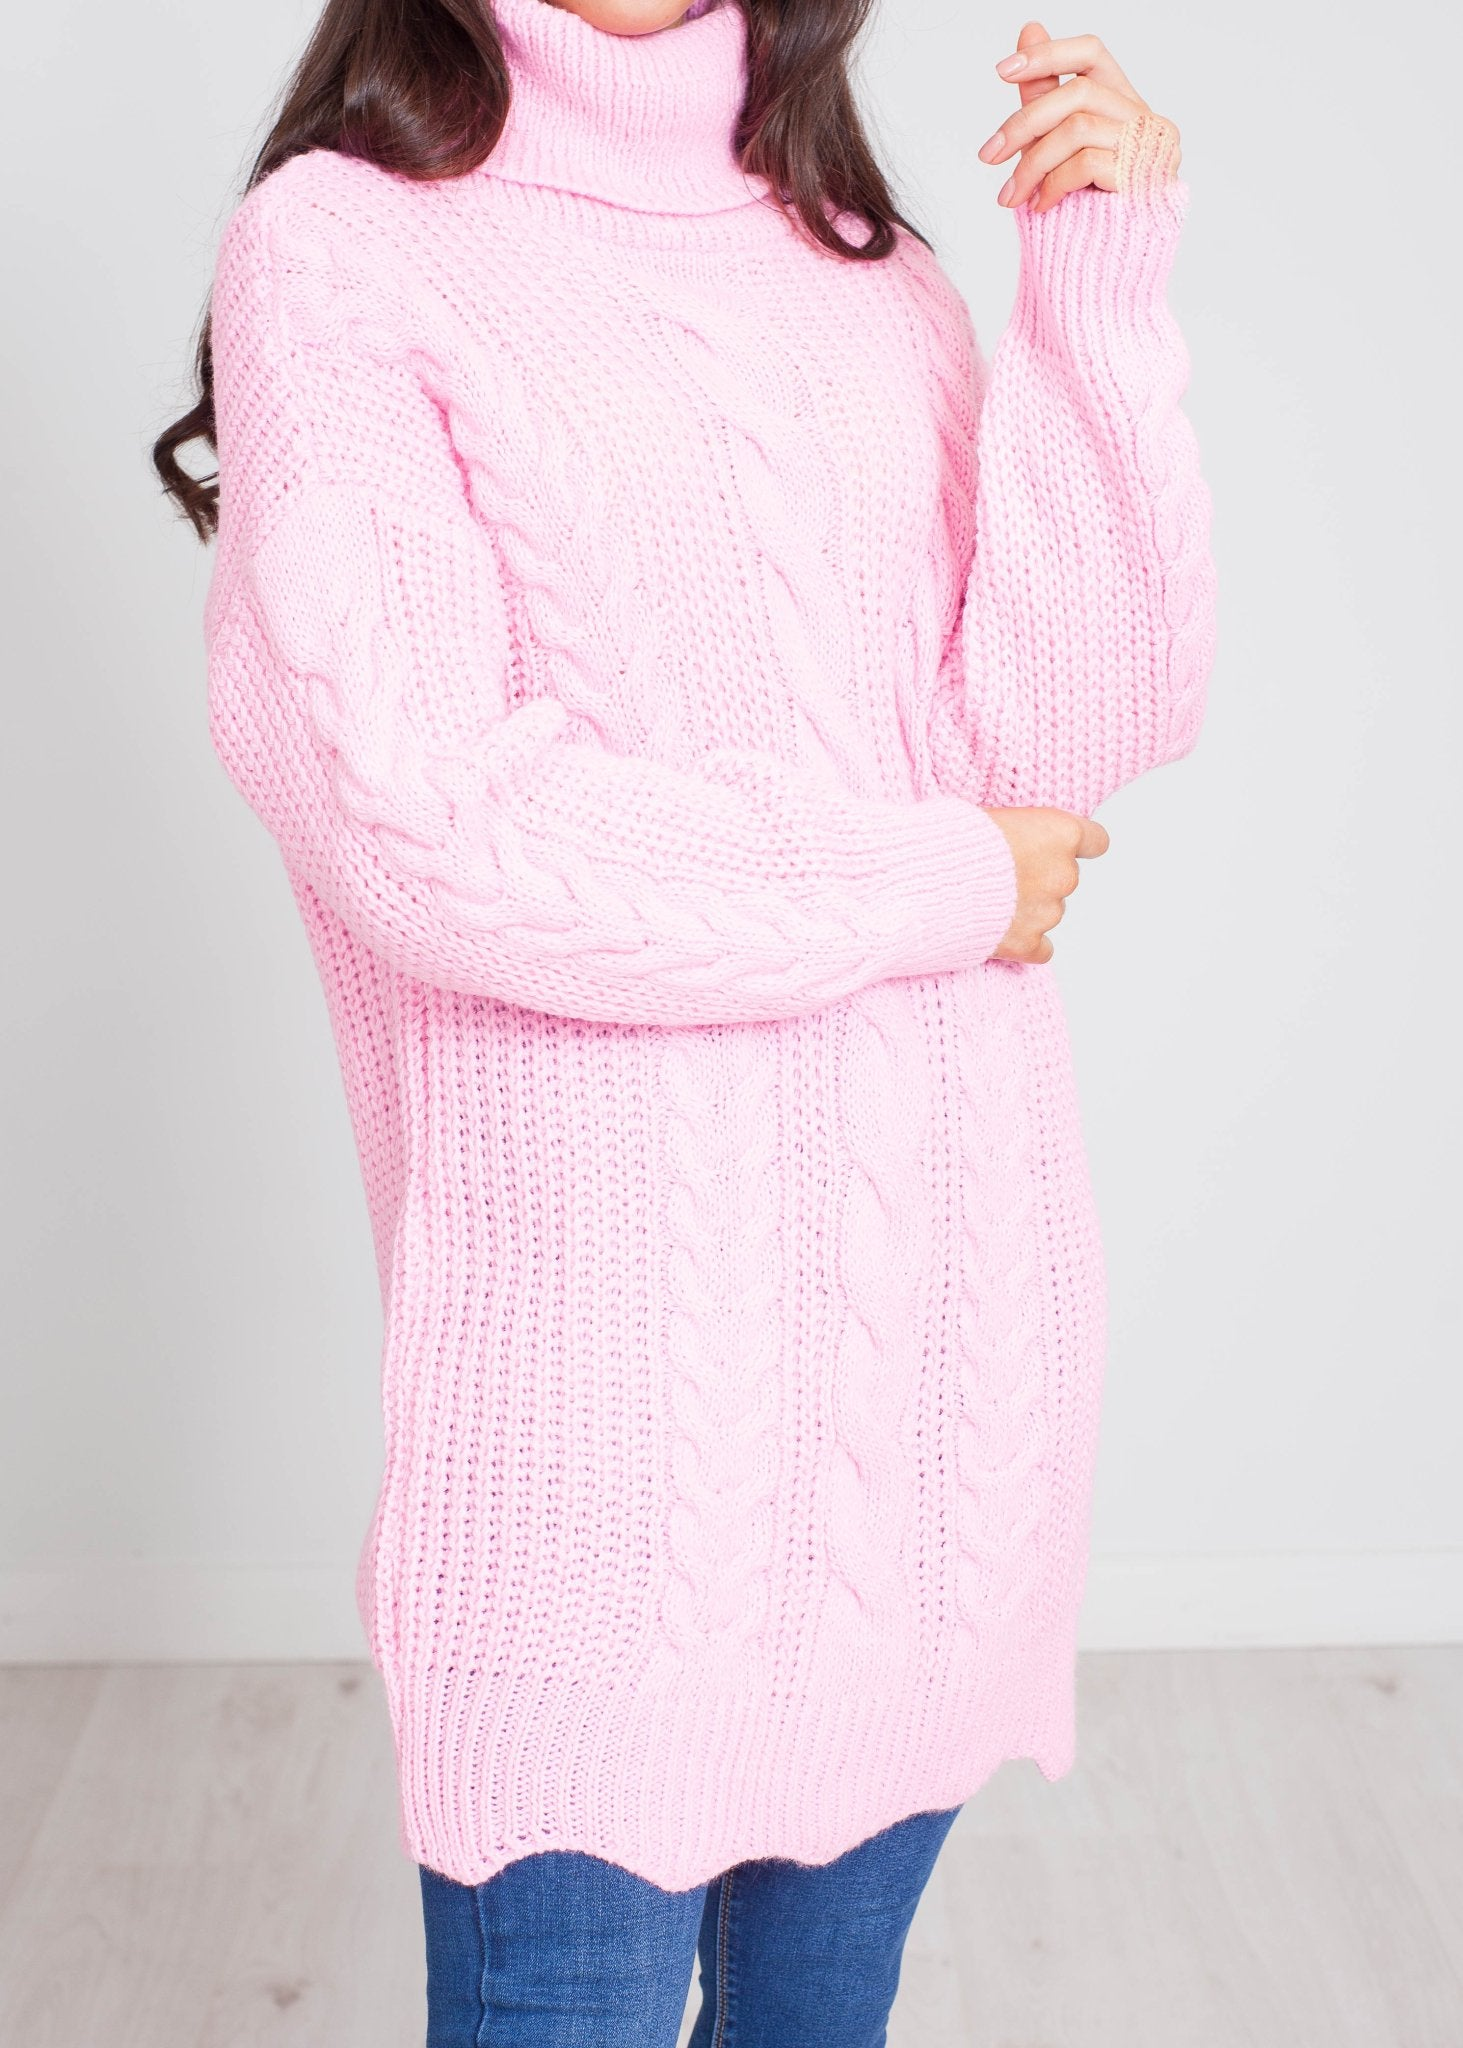 Priya Cable Knit Jumper Dress In Pink - The Walk in Wardrobe